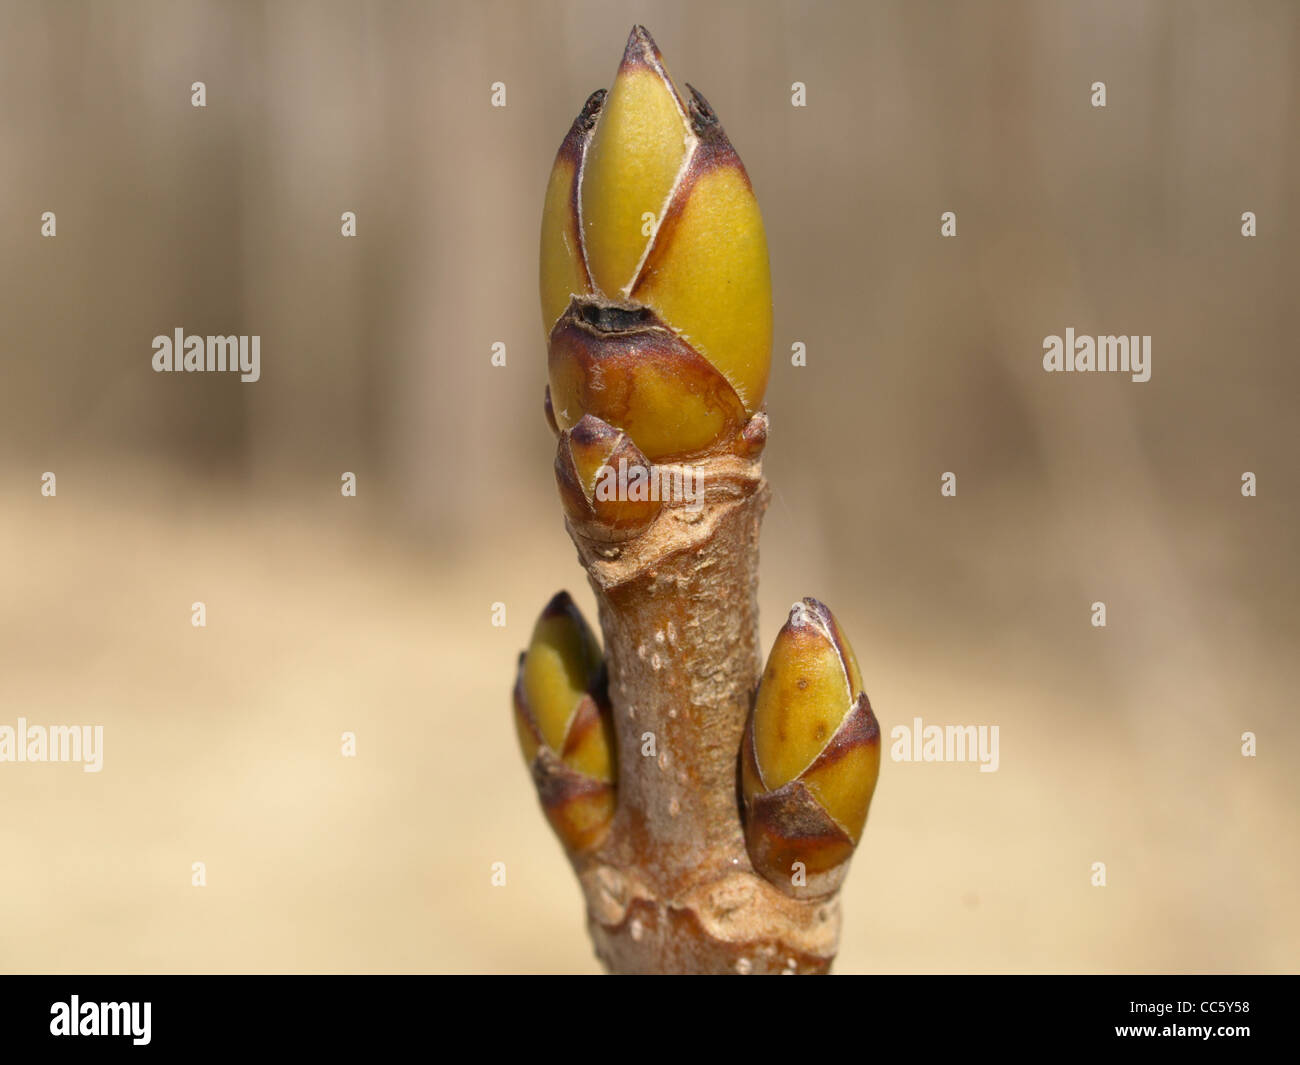 buds from sycamore maple / Acer pseudoplatanus / Knospen vom Bergahorn Stock Photo